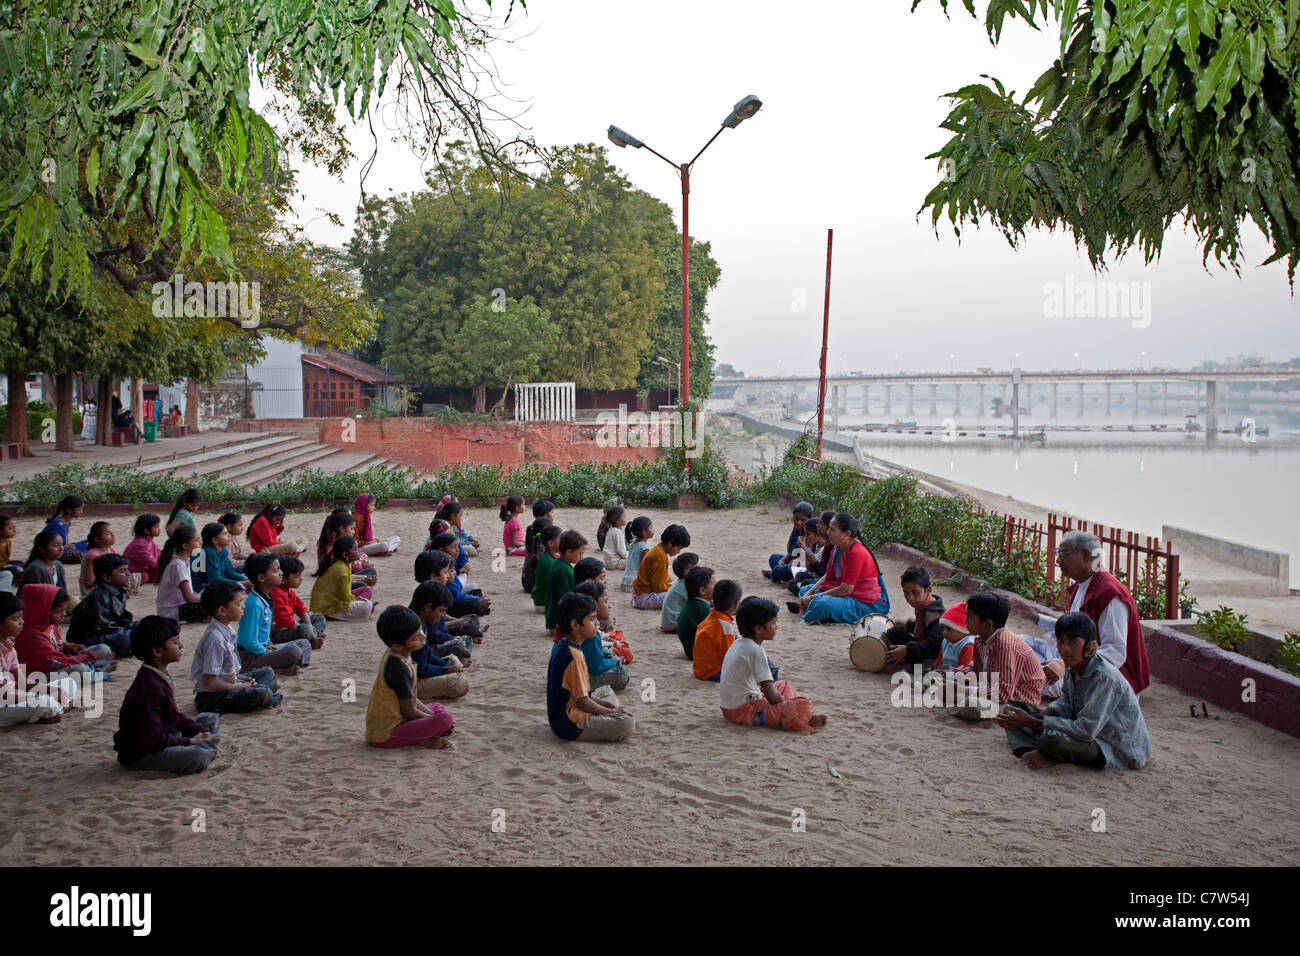 Children praying and chanting. Gandhi Ashram (Sabarmati Ashram). Ahmedabad. Gujarat. India - Stock Image